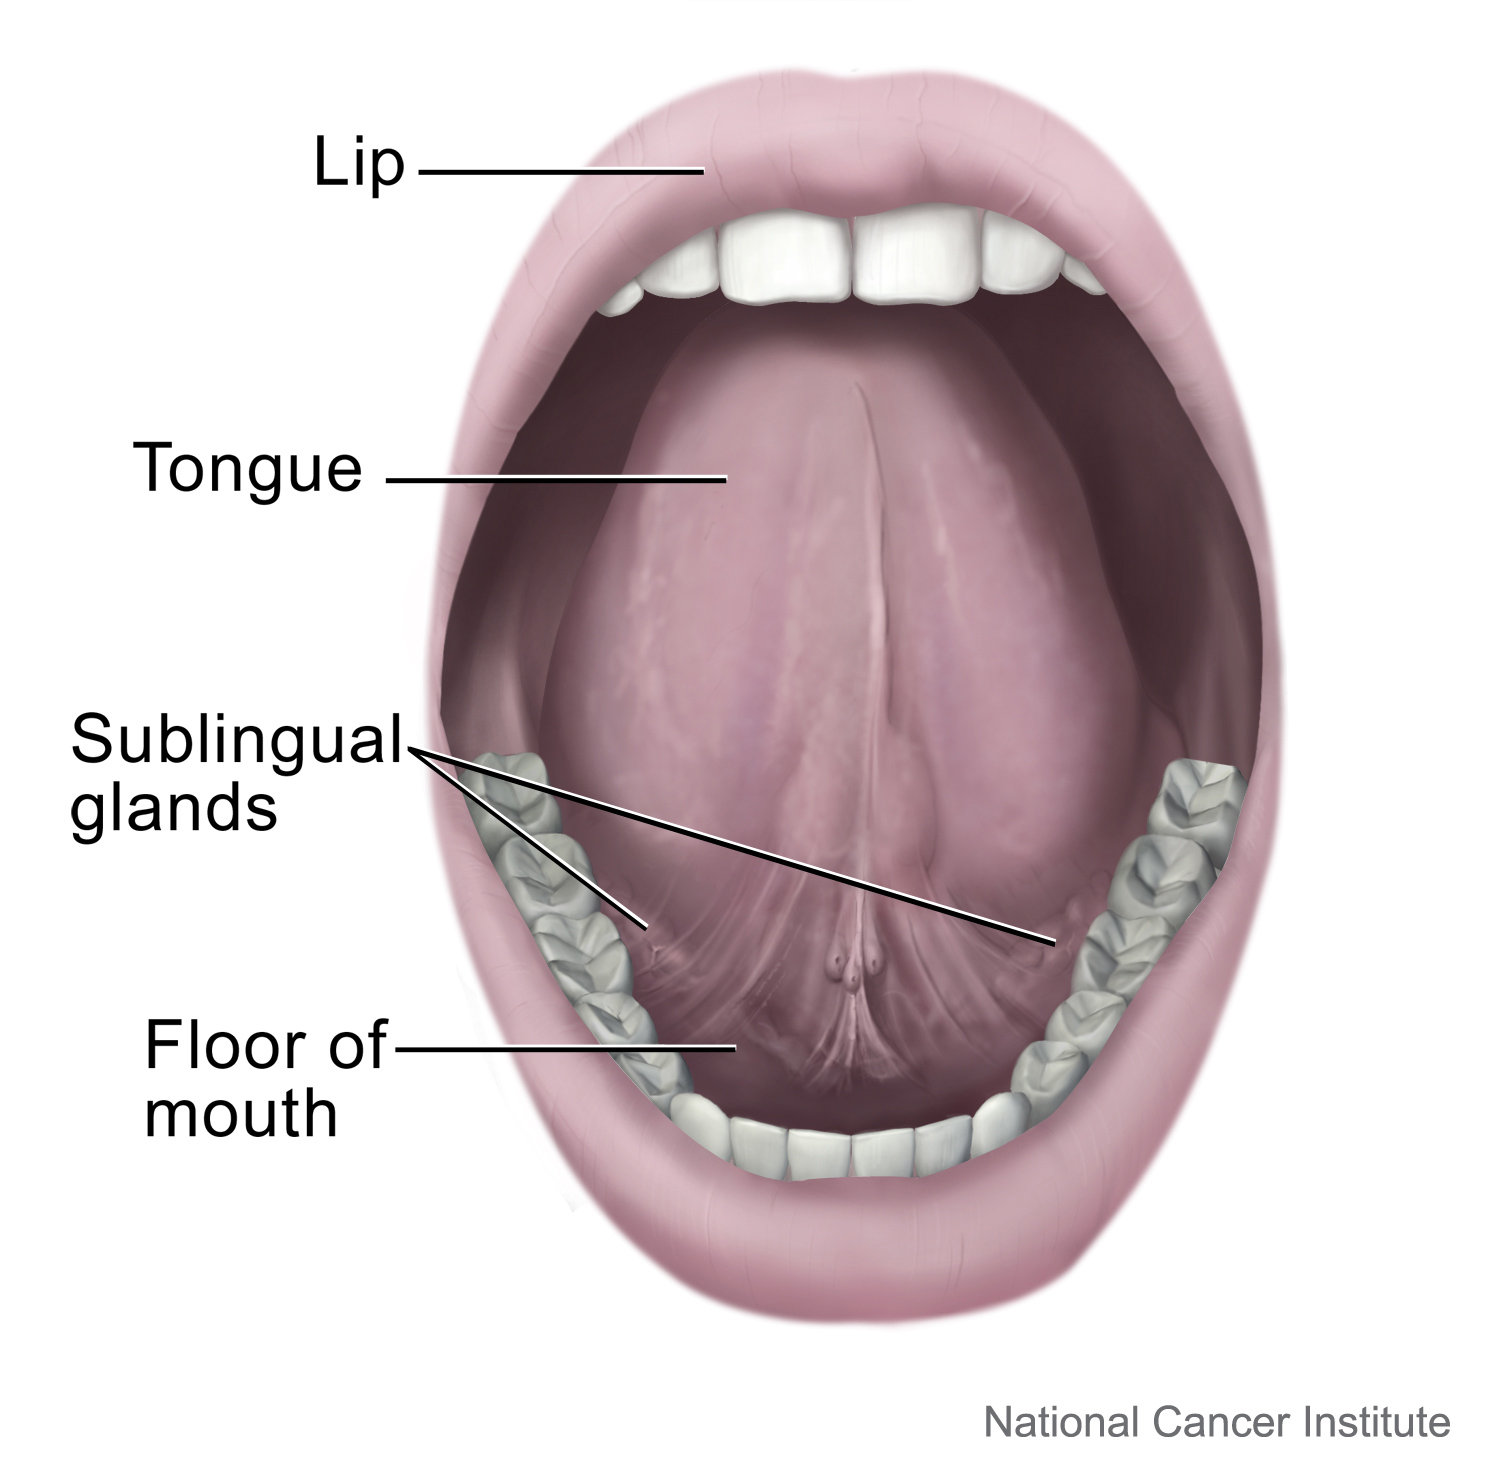 Mouth and Tongue: Image Details - NCI Visuals Online